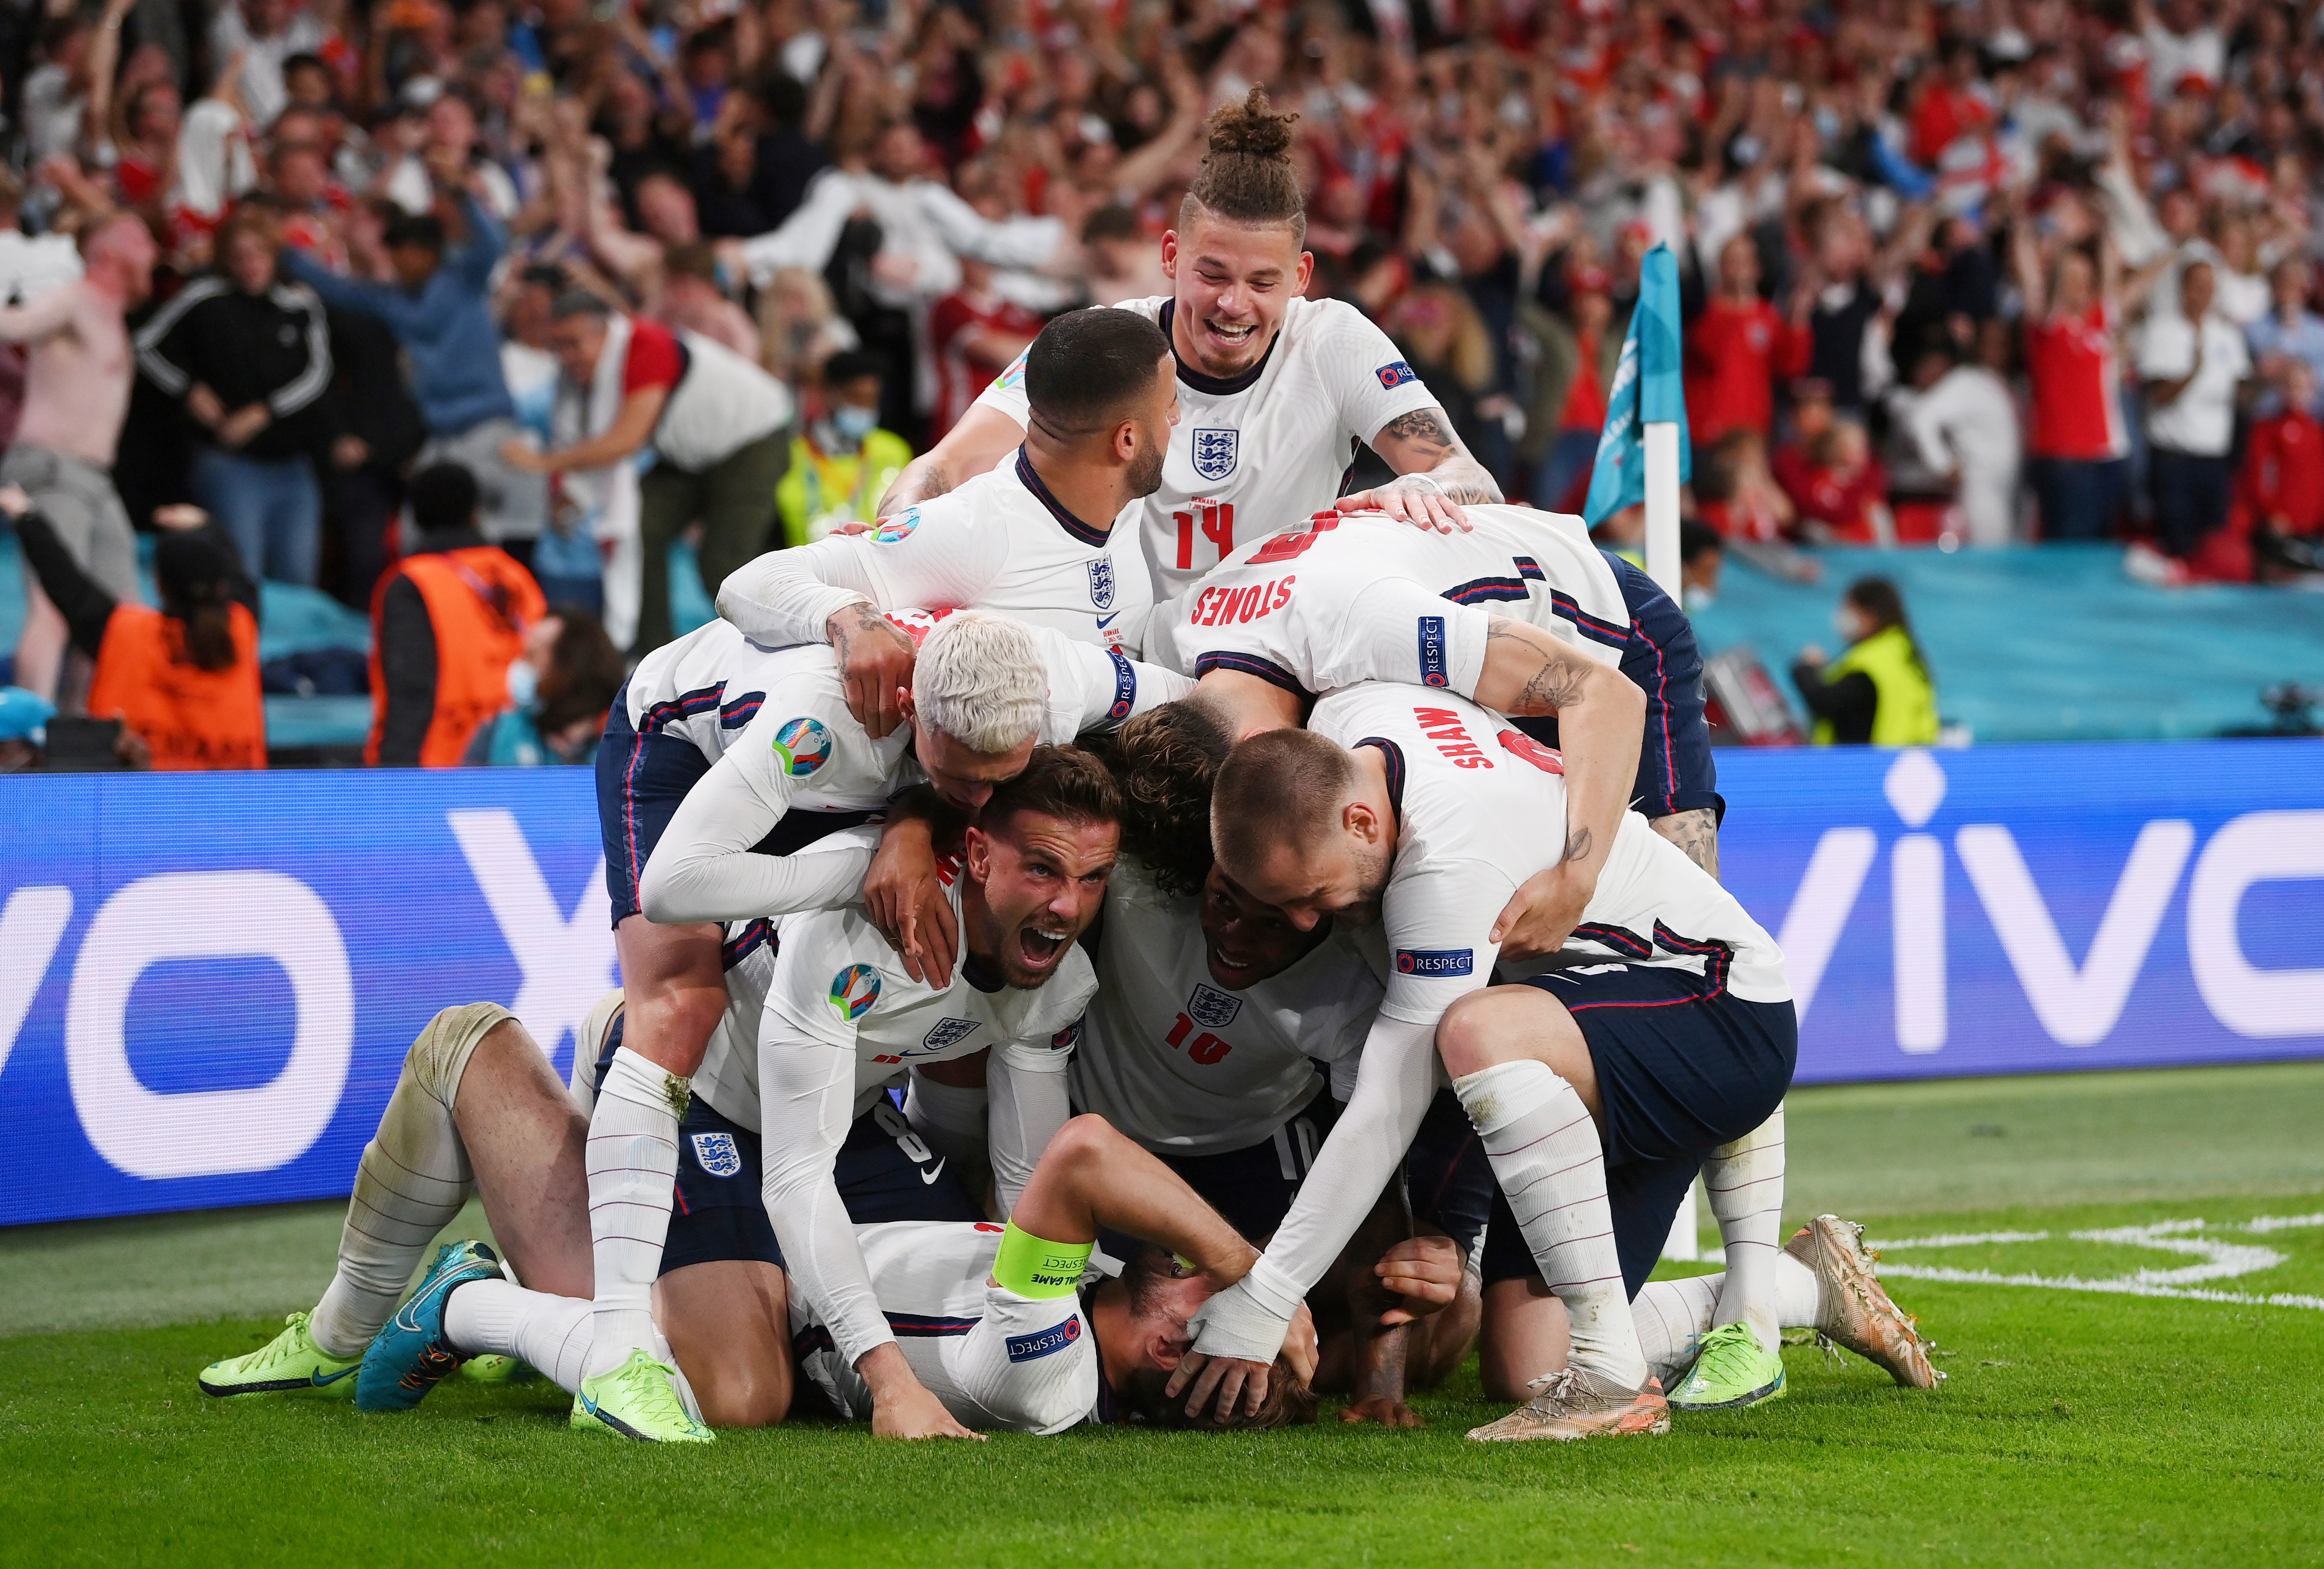 Soccer Football - Euro 2020 - Semi Final - England v Denmark - Wembley Stadium, London, Britain - July 7, 2021 England's Harry Kane celebrates scores their second goal with teammates Pool via REUTERS/Laurence Griffiths